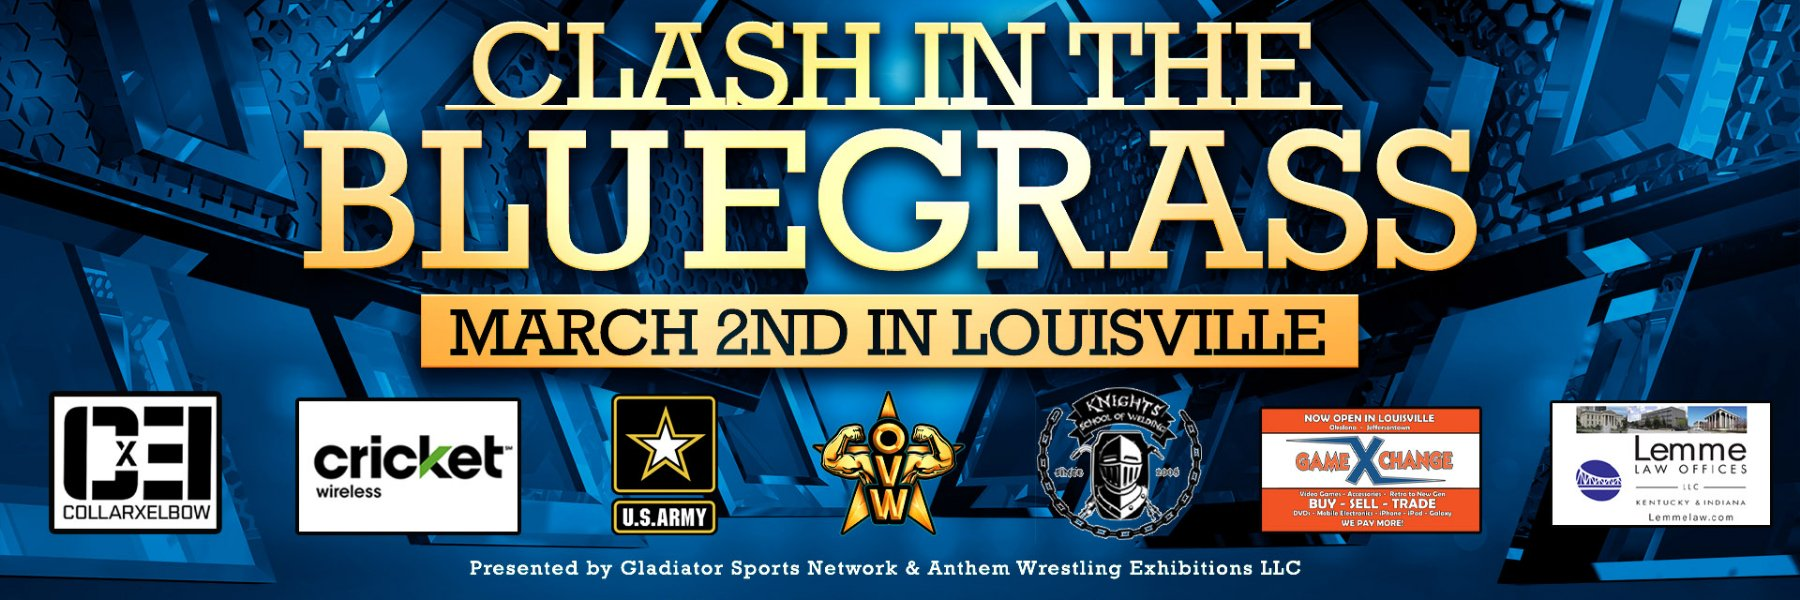 Clash in the Bluegrass 2019